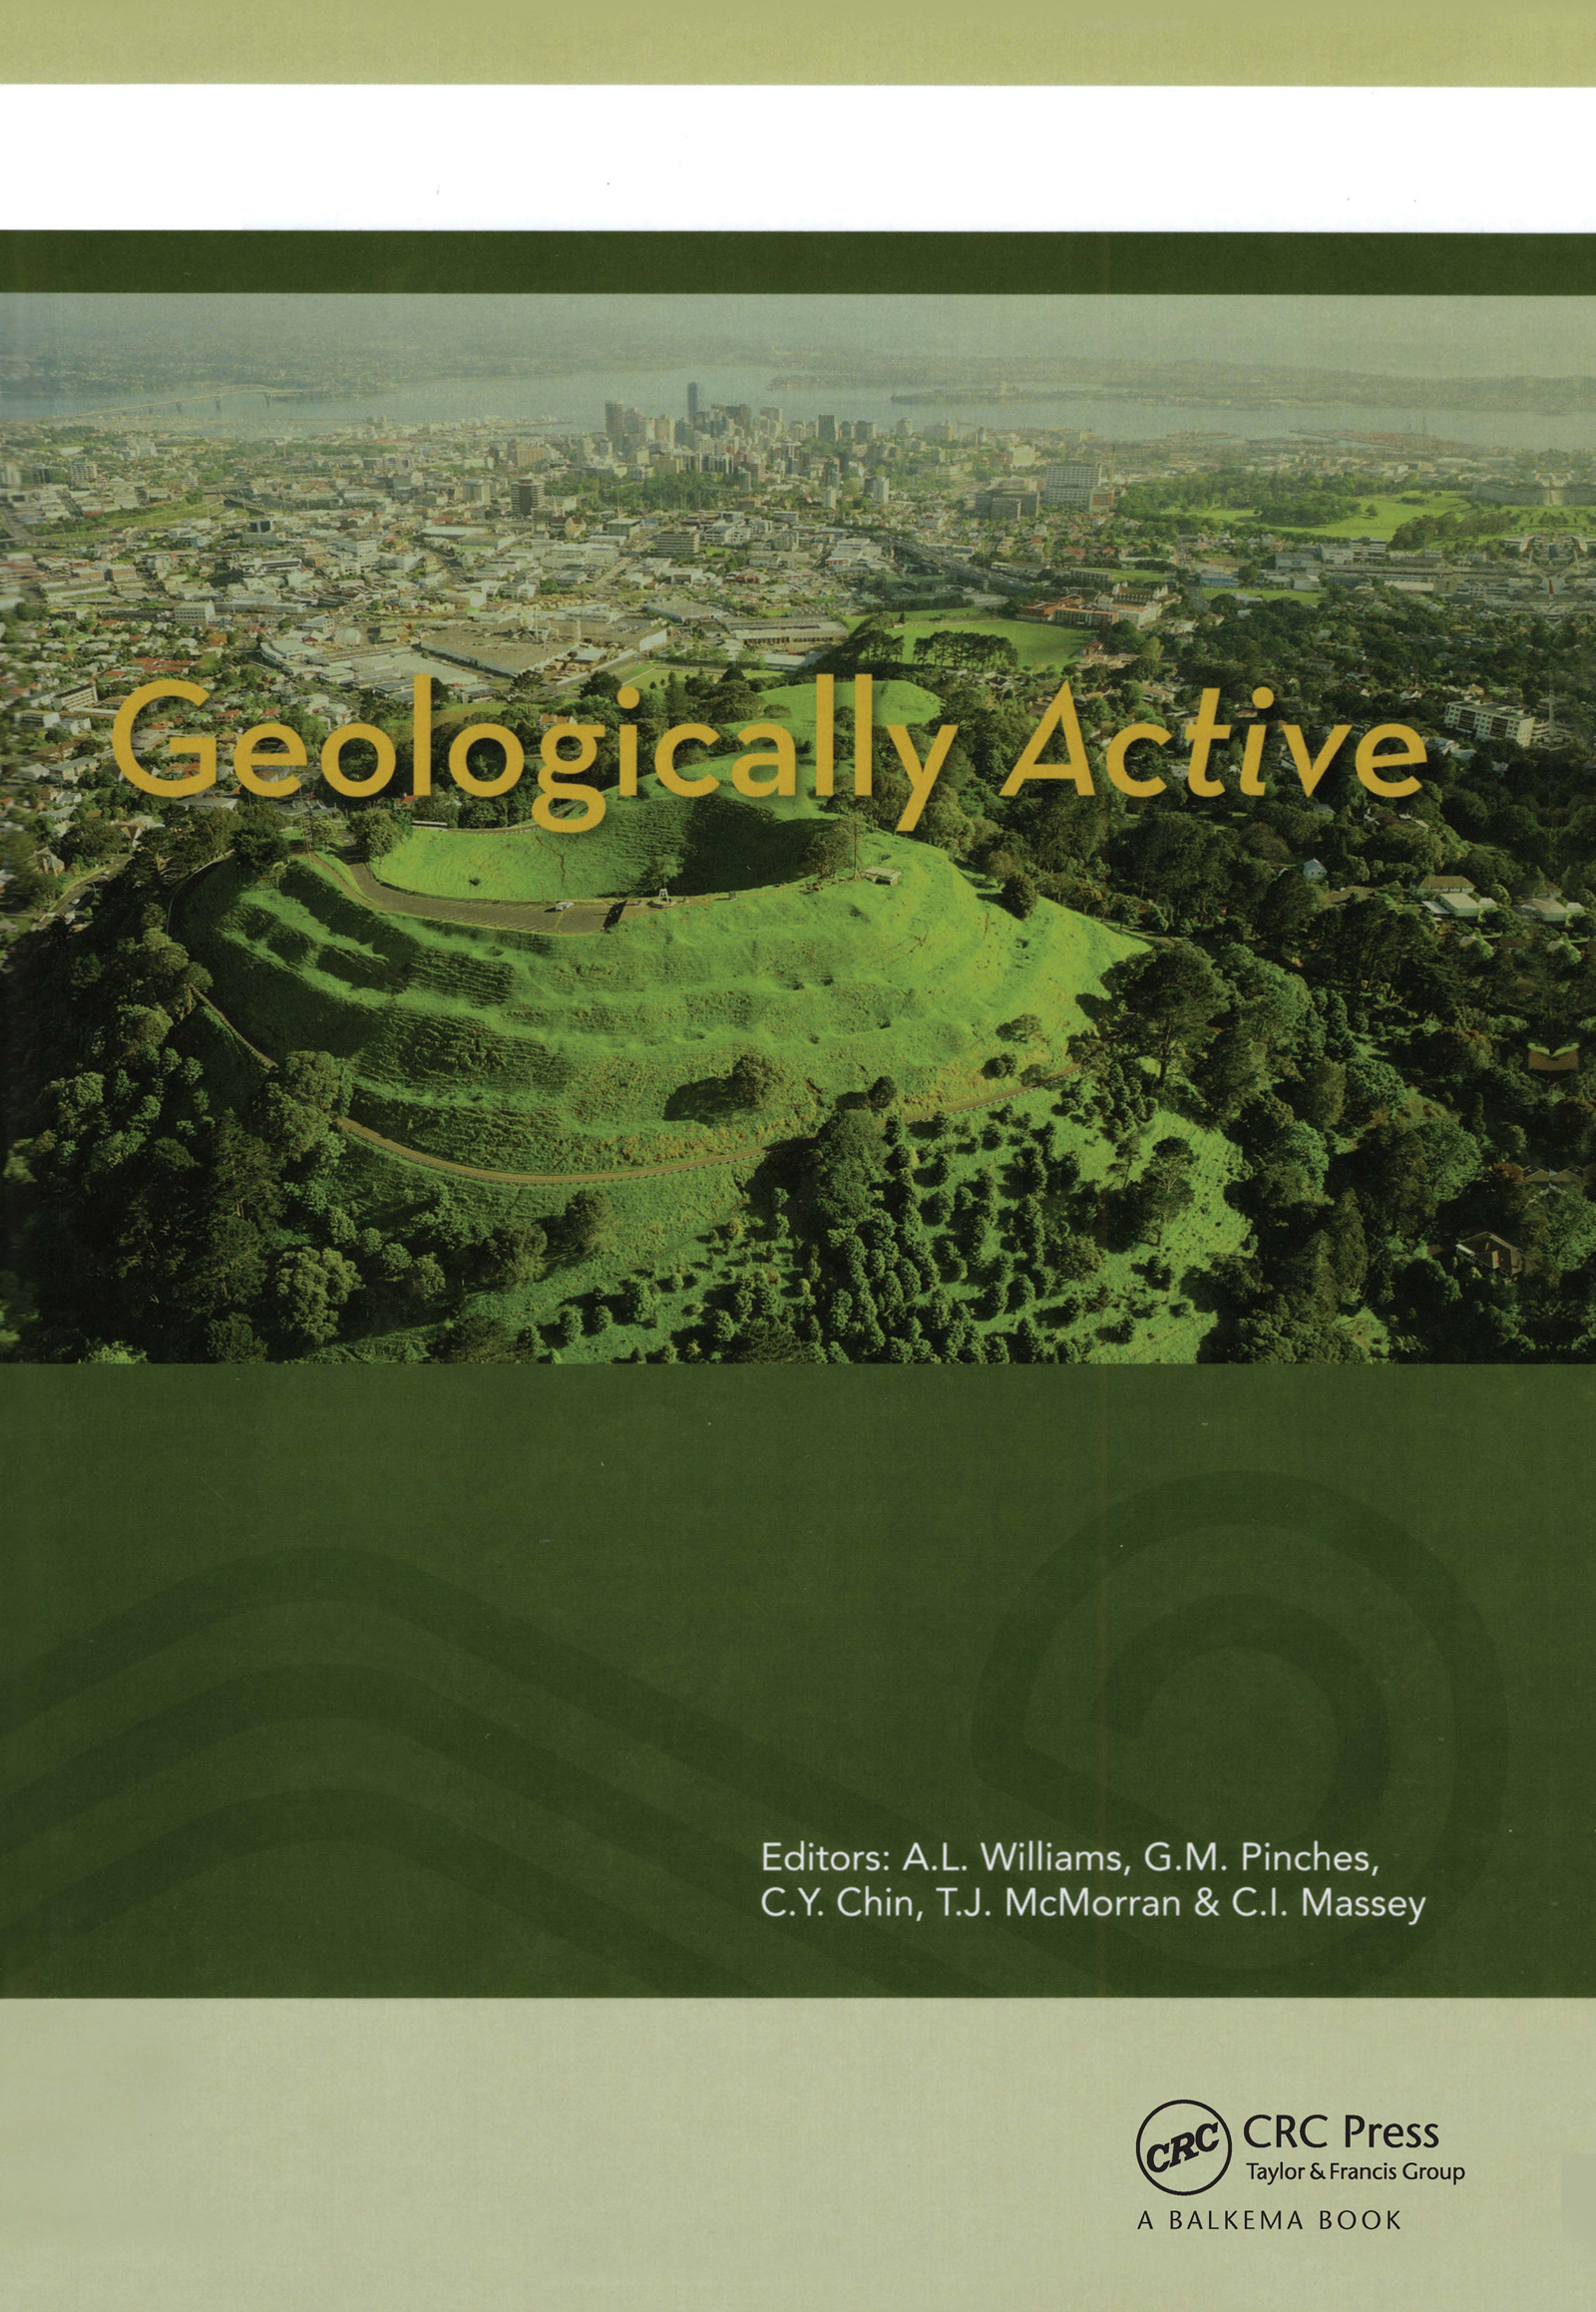 Geologically Active: Proceedings of the 11th IAEG Congress. Auckland, New Zealand, 5-10 September 2010, 1st Edition (Pack - Book and CD) book cover